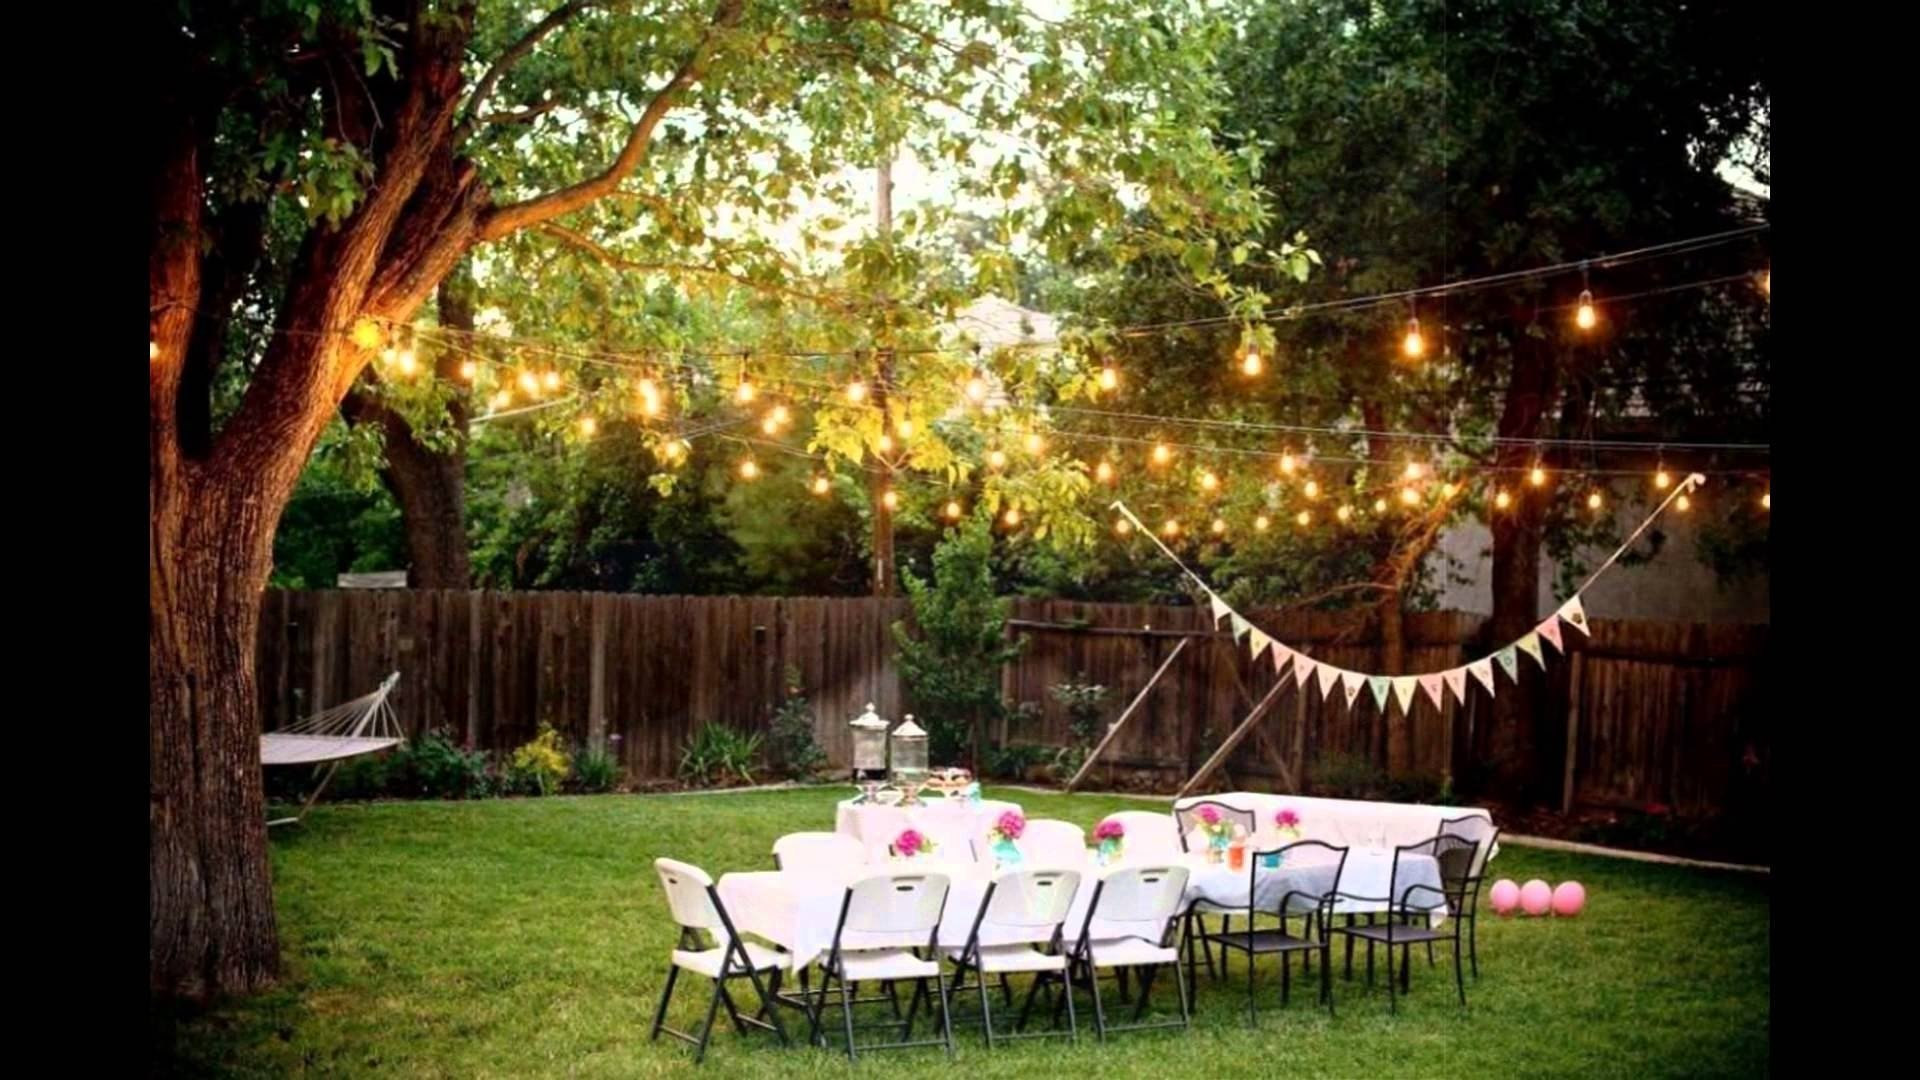 10 Attractive Small Wedding Ideas For Summer how to host an intimate backyard wedding fashion week